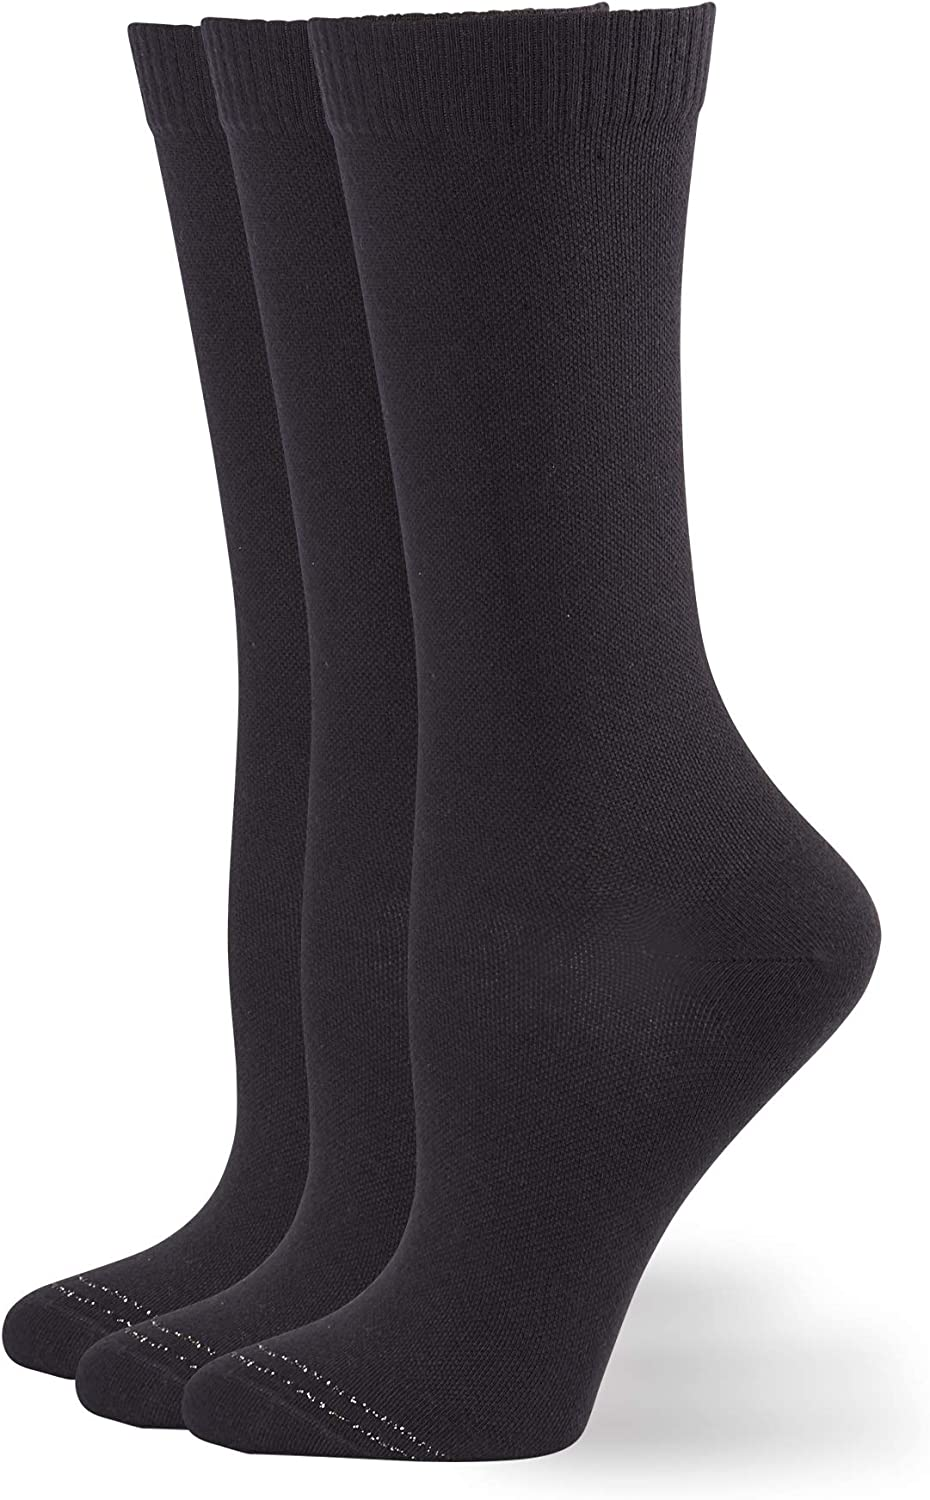 HUE womens Compression Crew Sock 3 Pair Pack